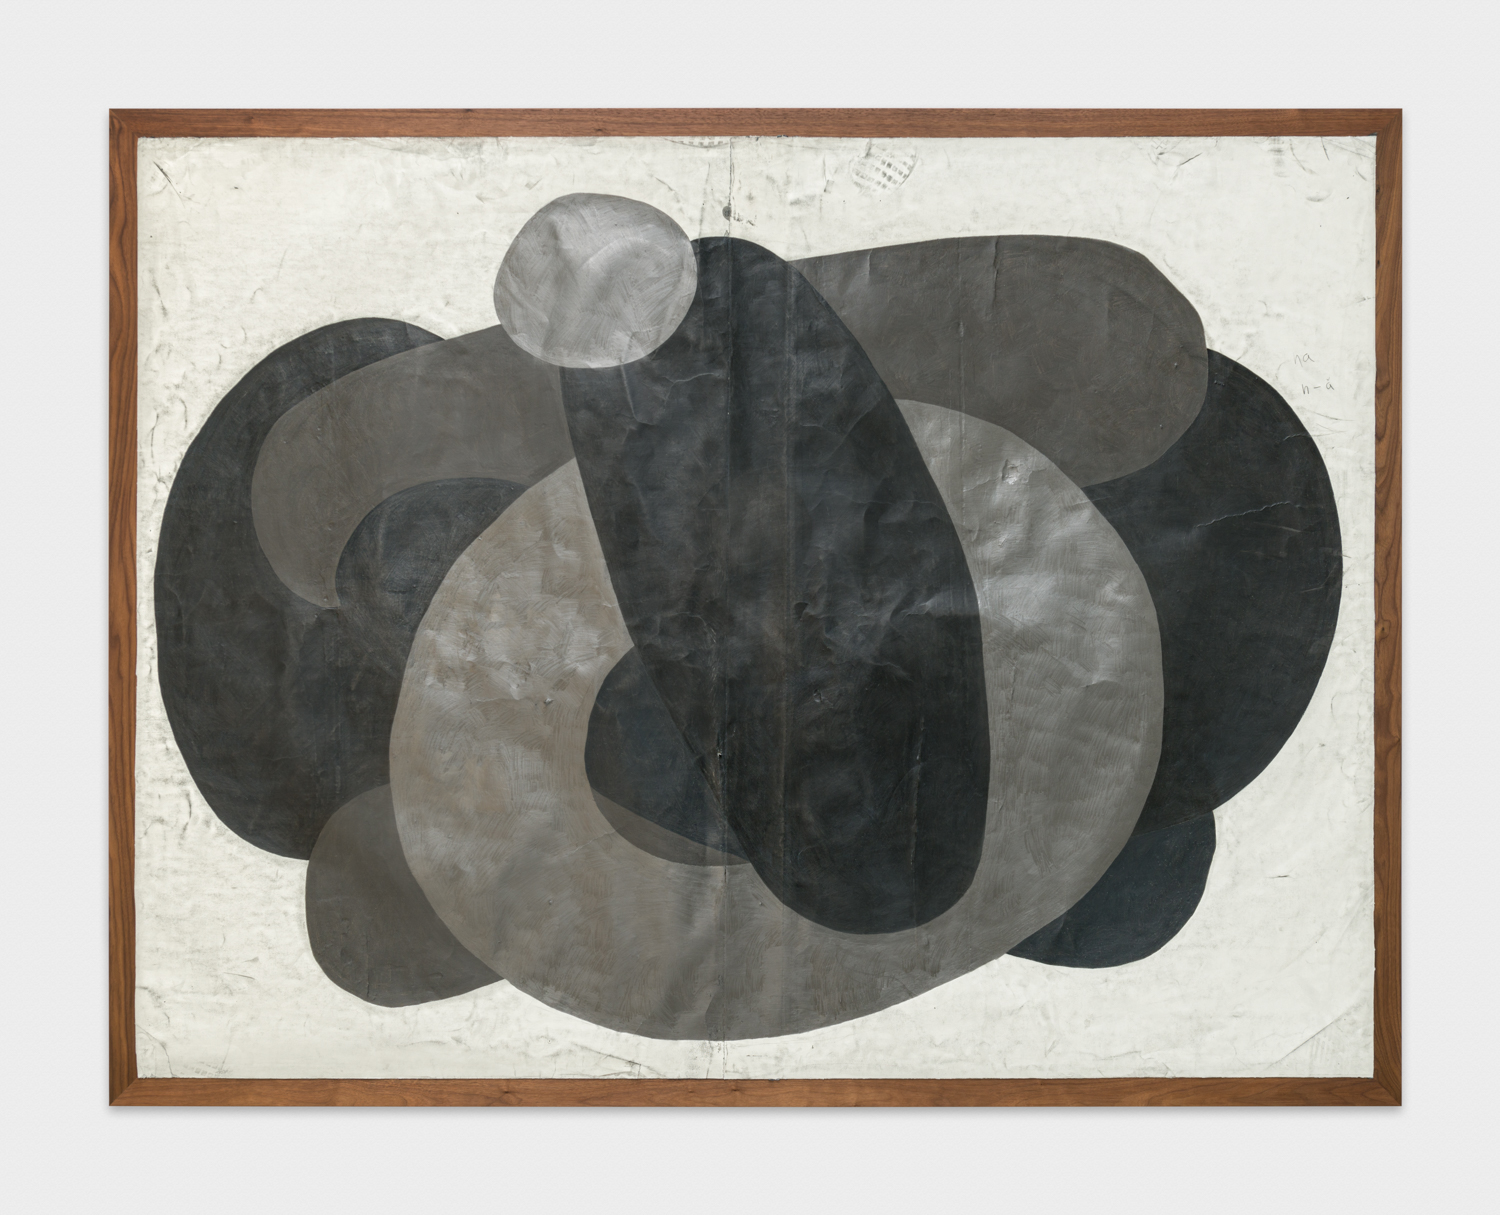 Tony Lewis  Ha!  2017 Graphite, pencil, and colored pencil on paper mounted on wood 78h x 100w x 2d in TL434